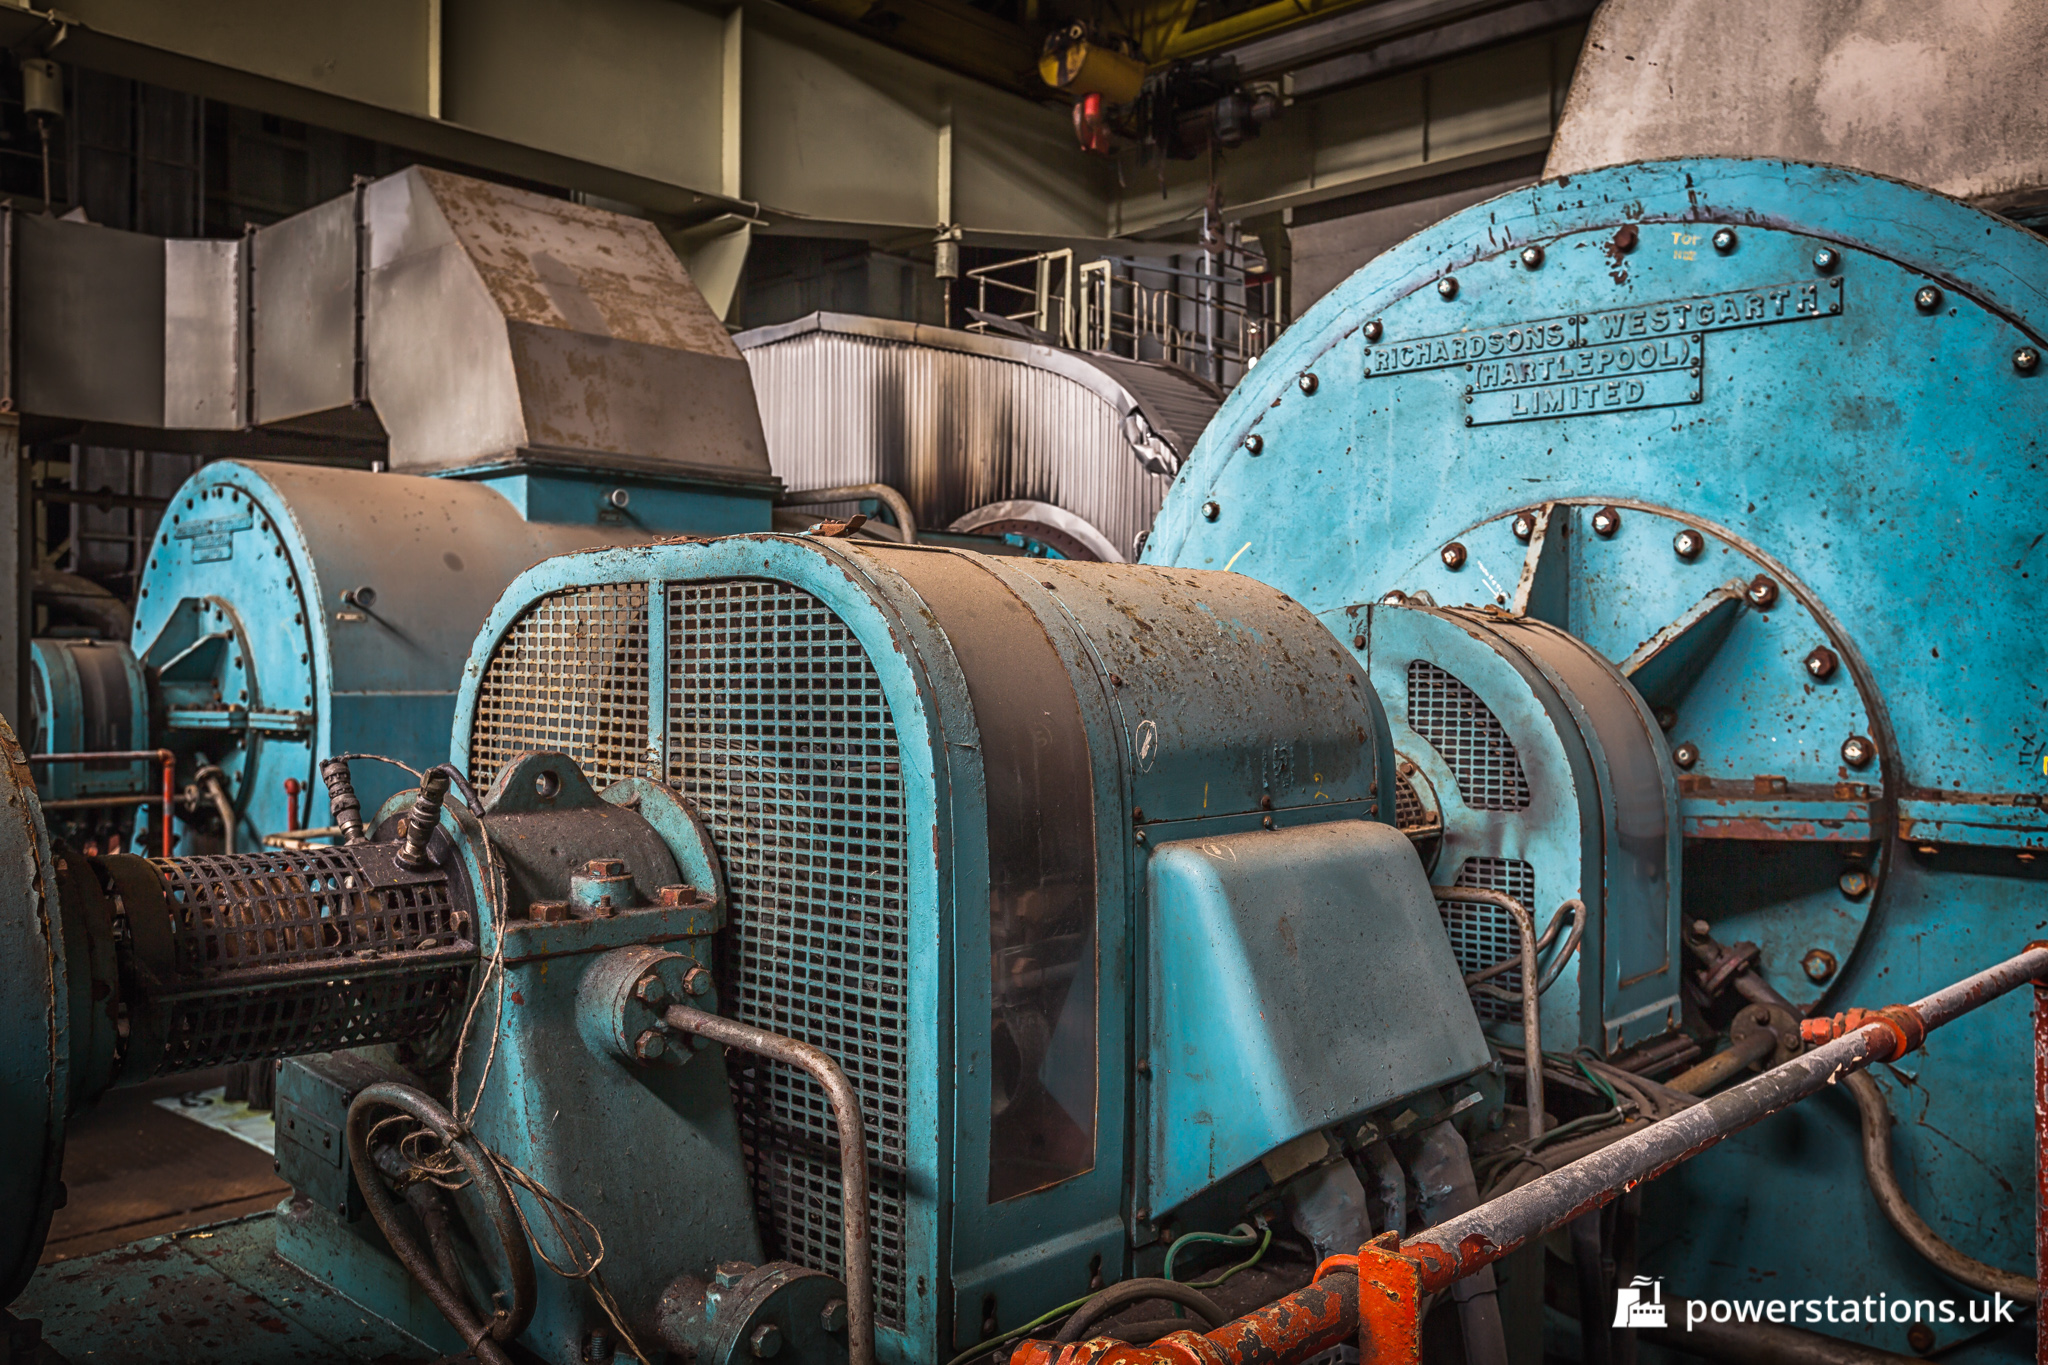 Fawley Power Station – Turbines – Power Stations of the UK